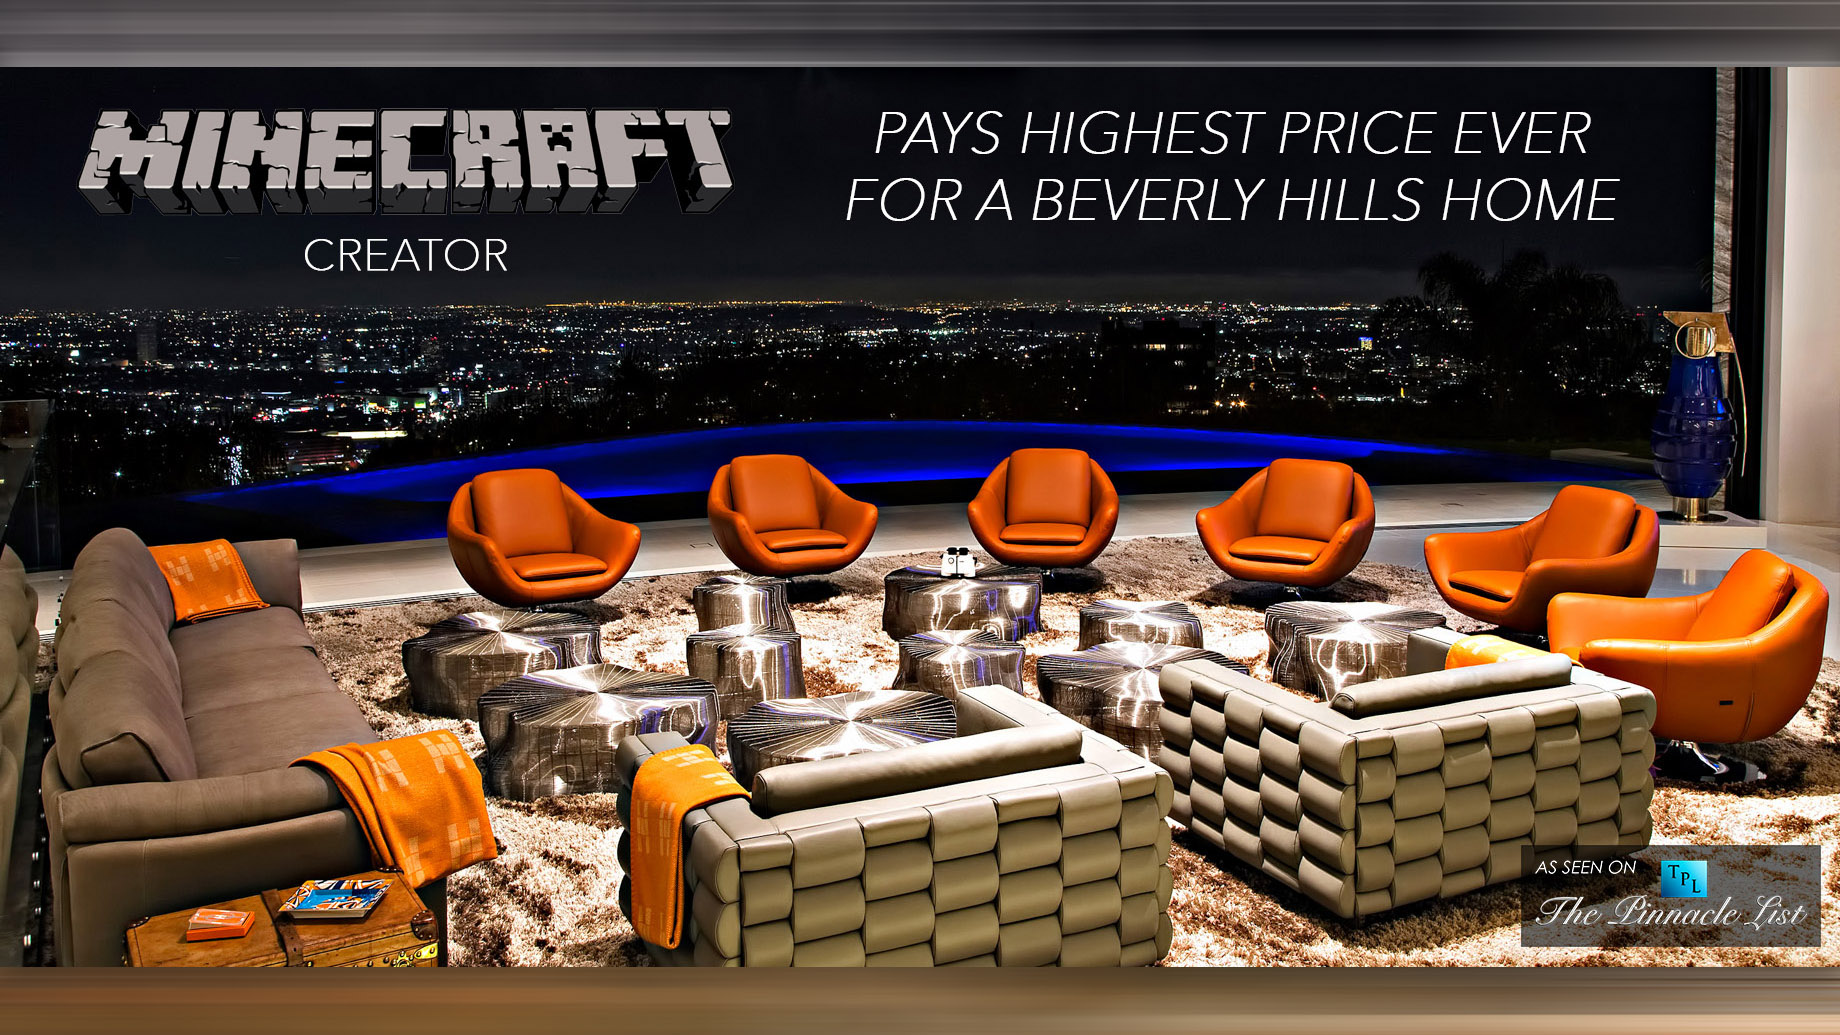 Minecraft Creator Pays $70 Million - The Highest Price Ever for a Beverly Hills Home